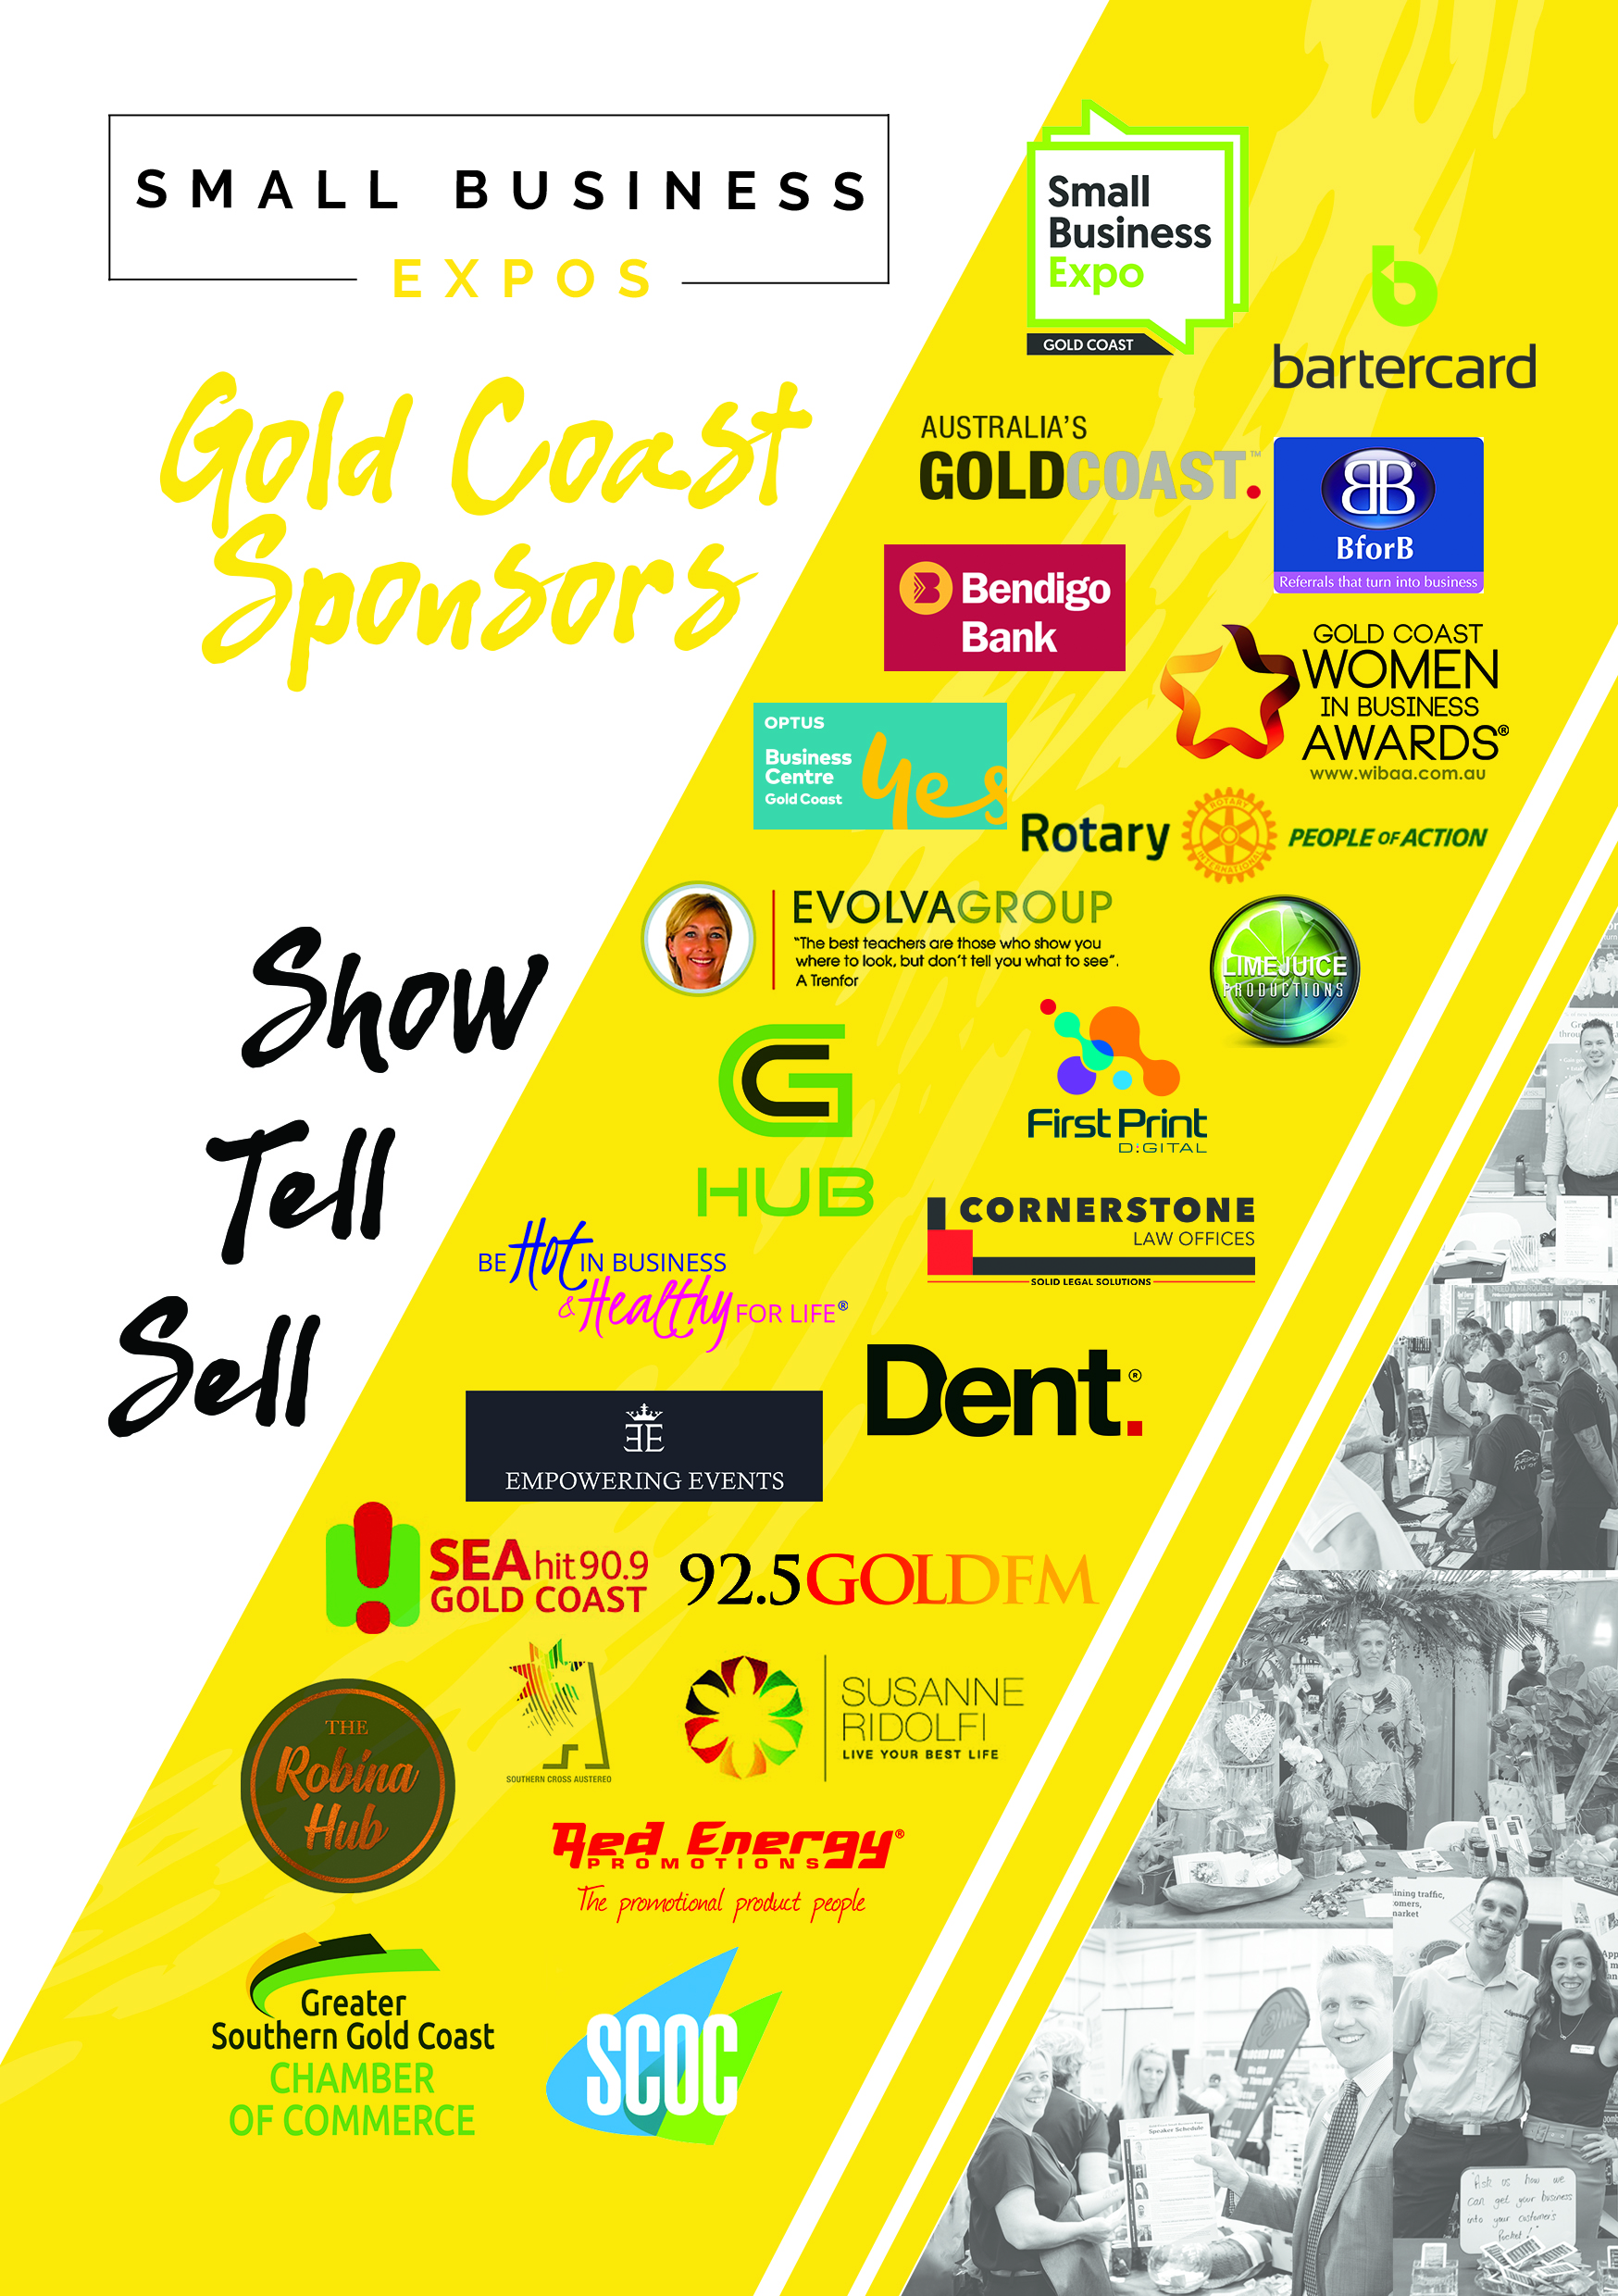 Business Expos   Brisbane   Gold Coast   Small Business Expos   Gc A5 Flyer Back